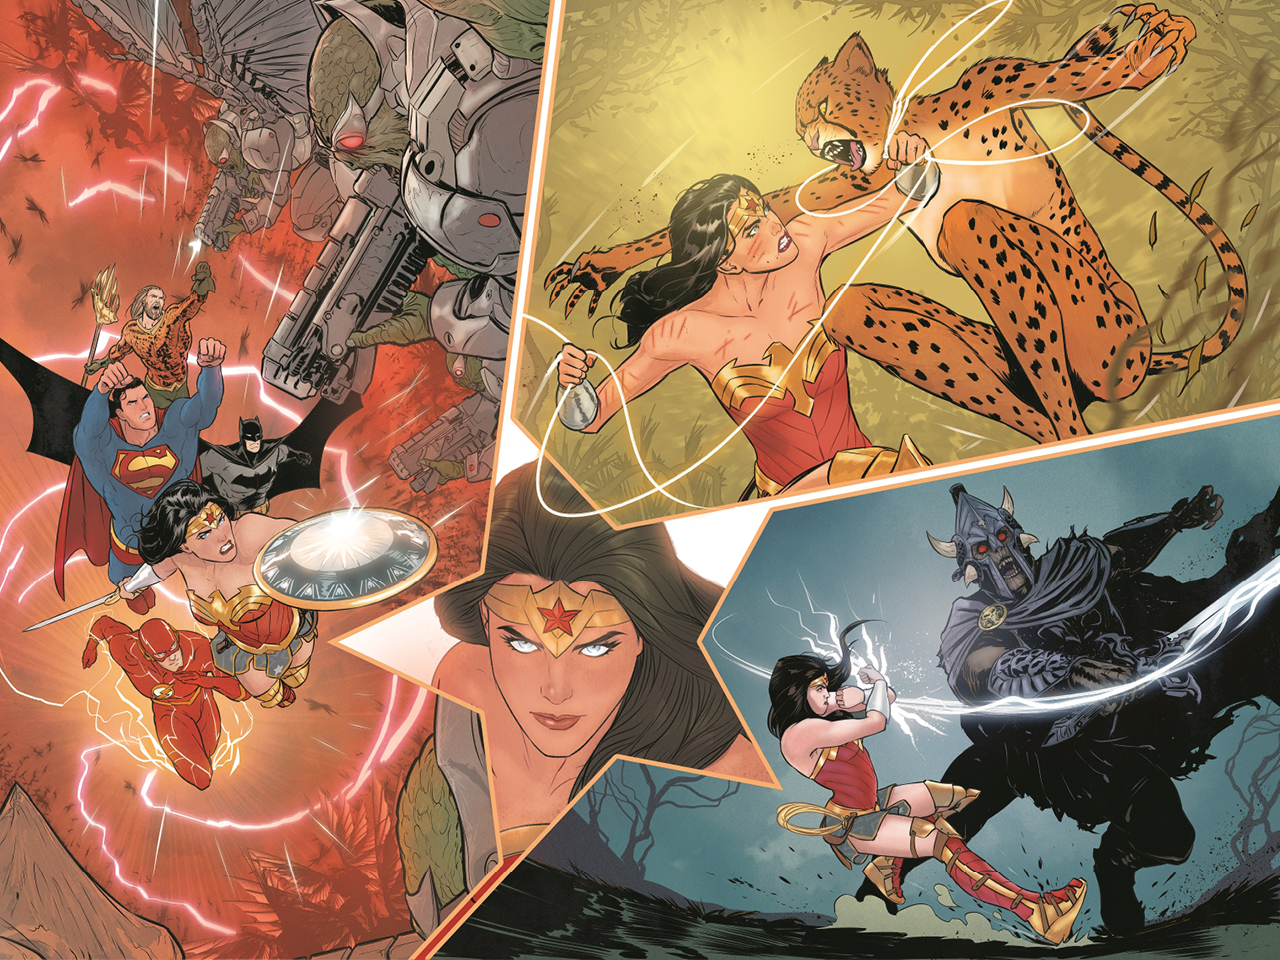 A collection of images of Wonder Woman, drawn by Mariko Tamaki.